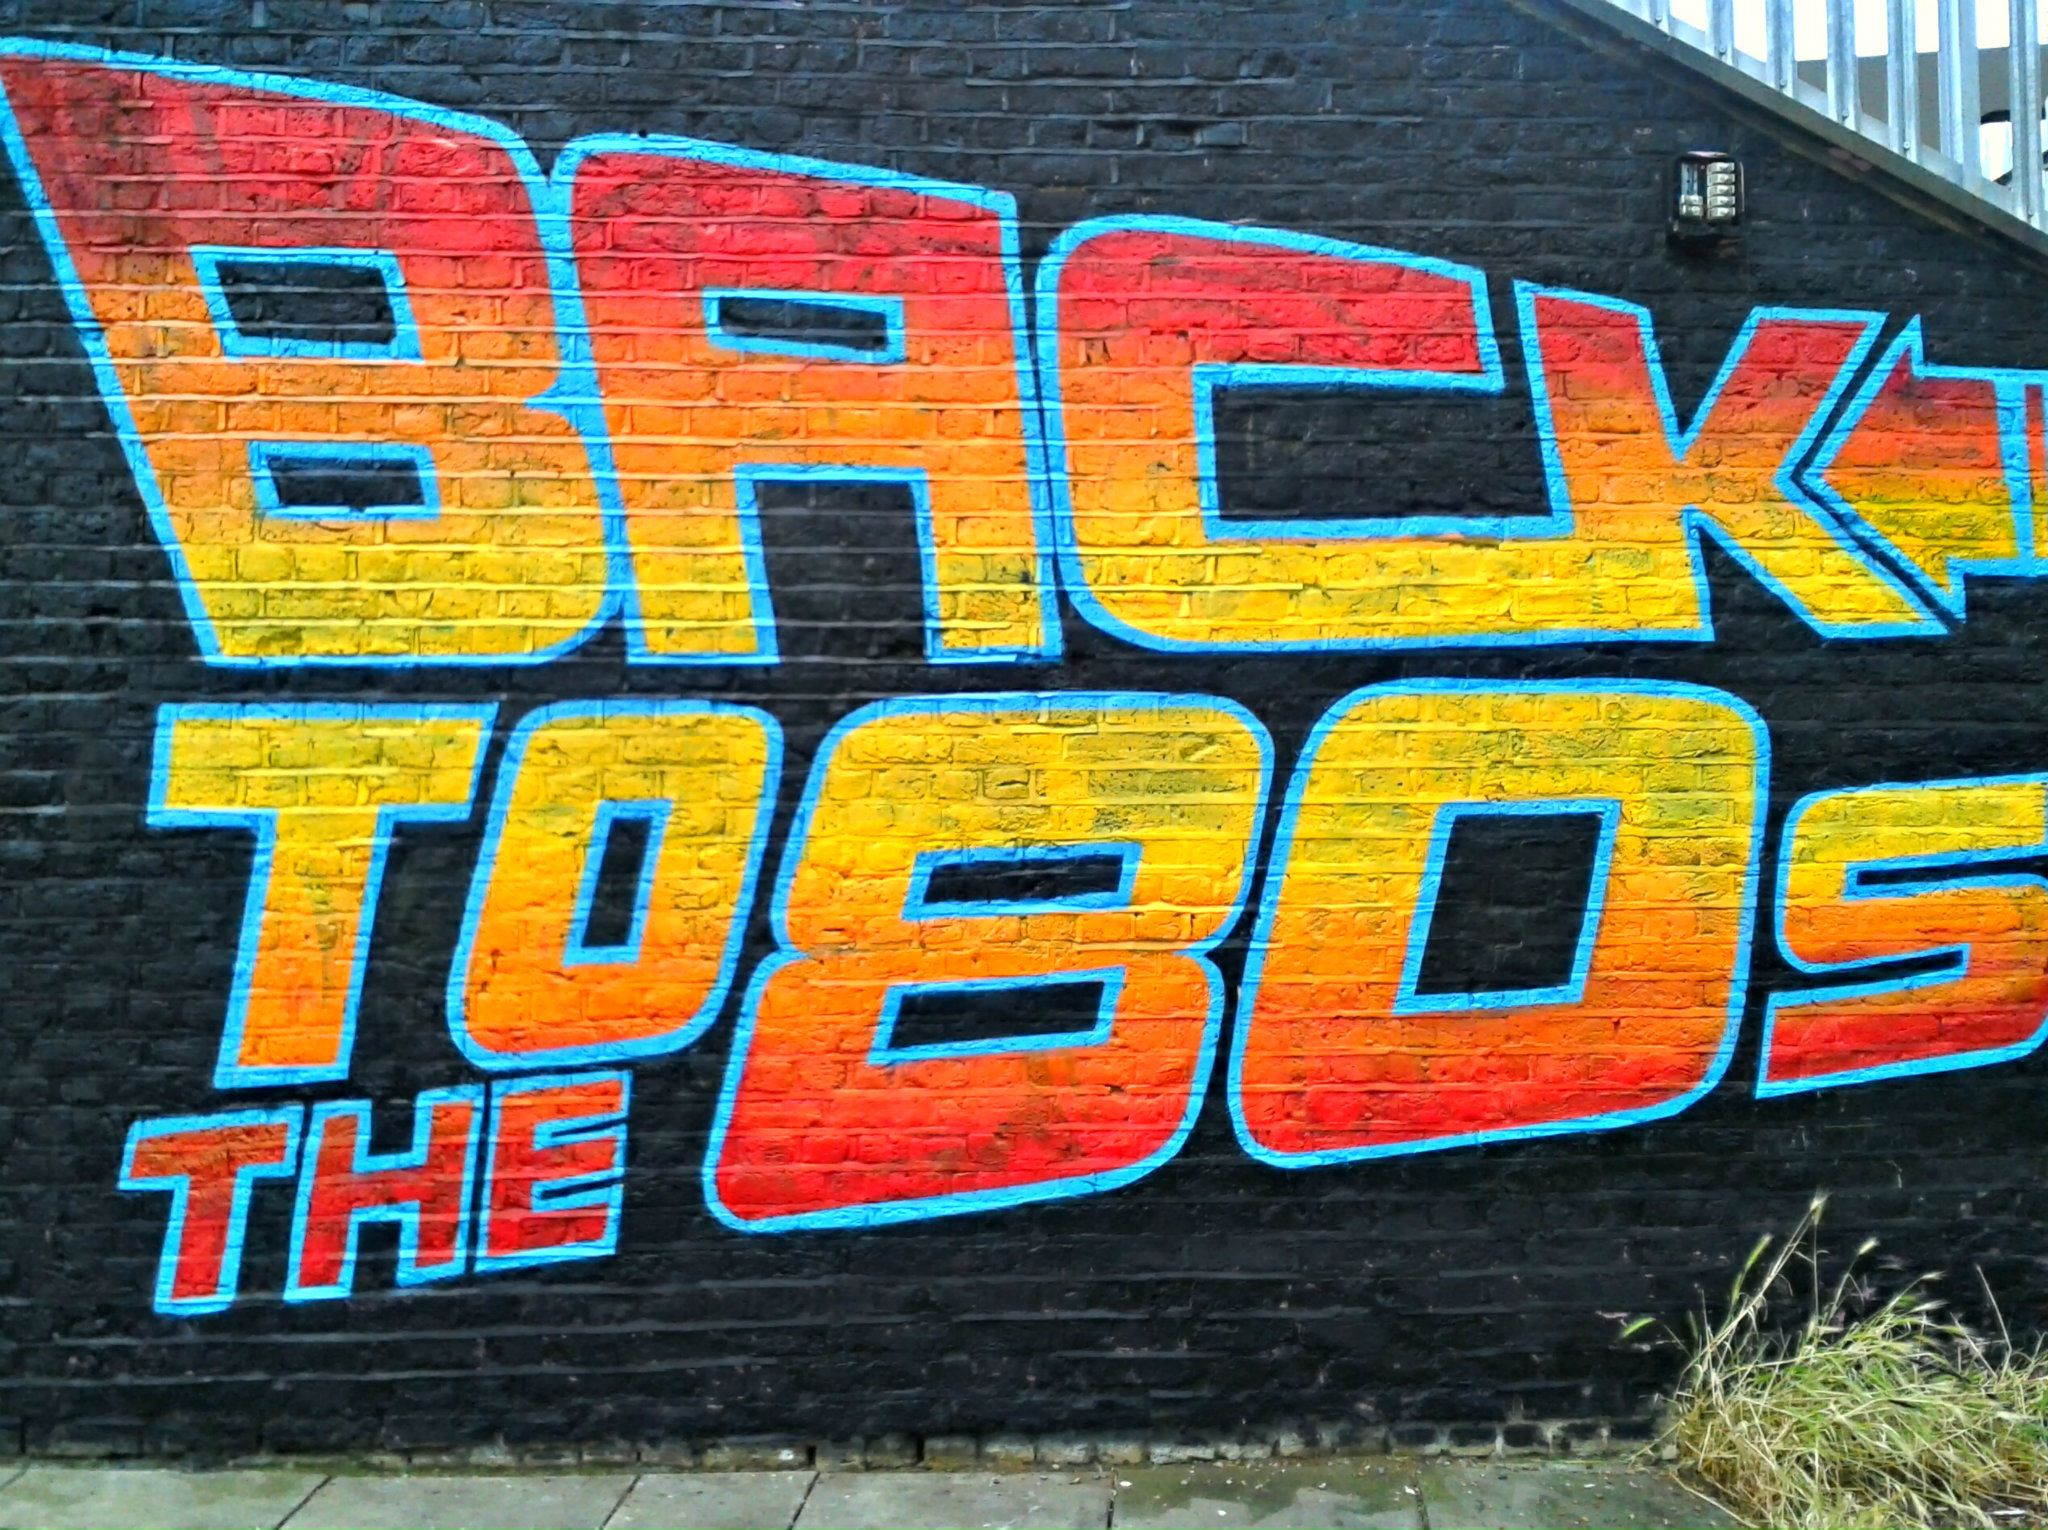 Street art spoofing Back to the Future